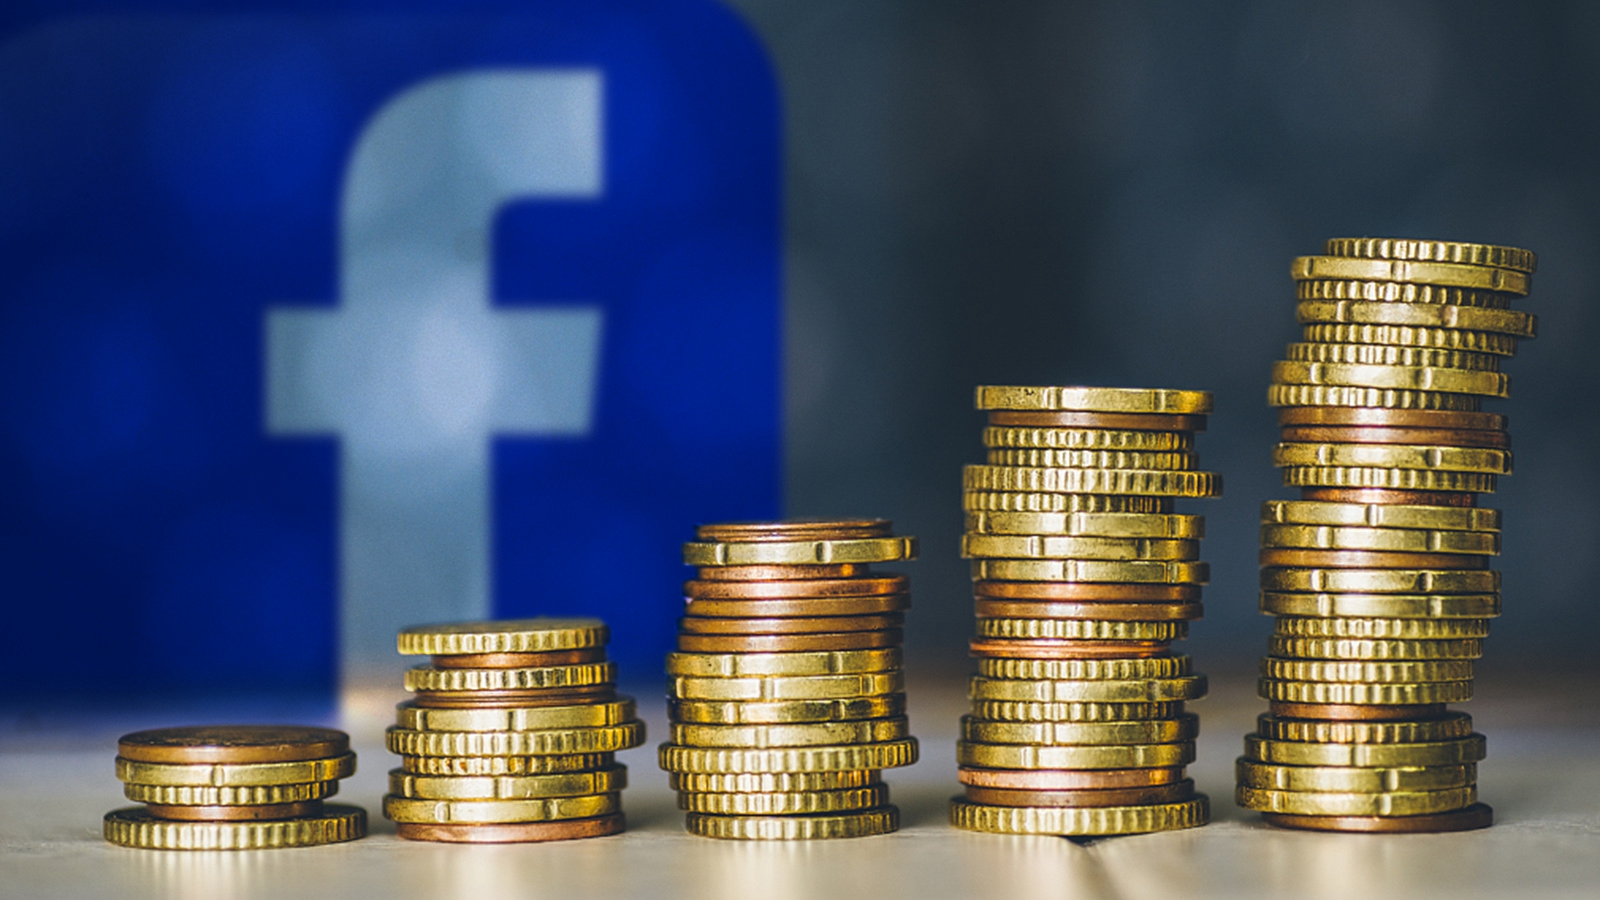 Facebook unveils new Libra cryptocurrency